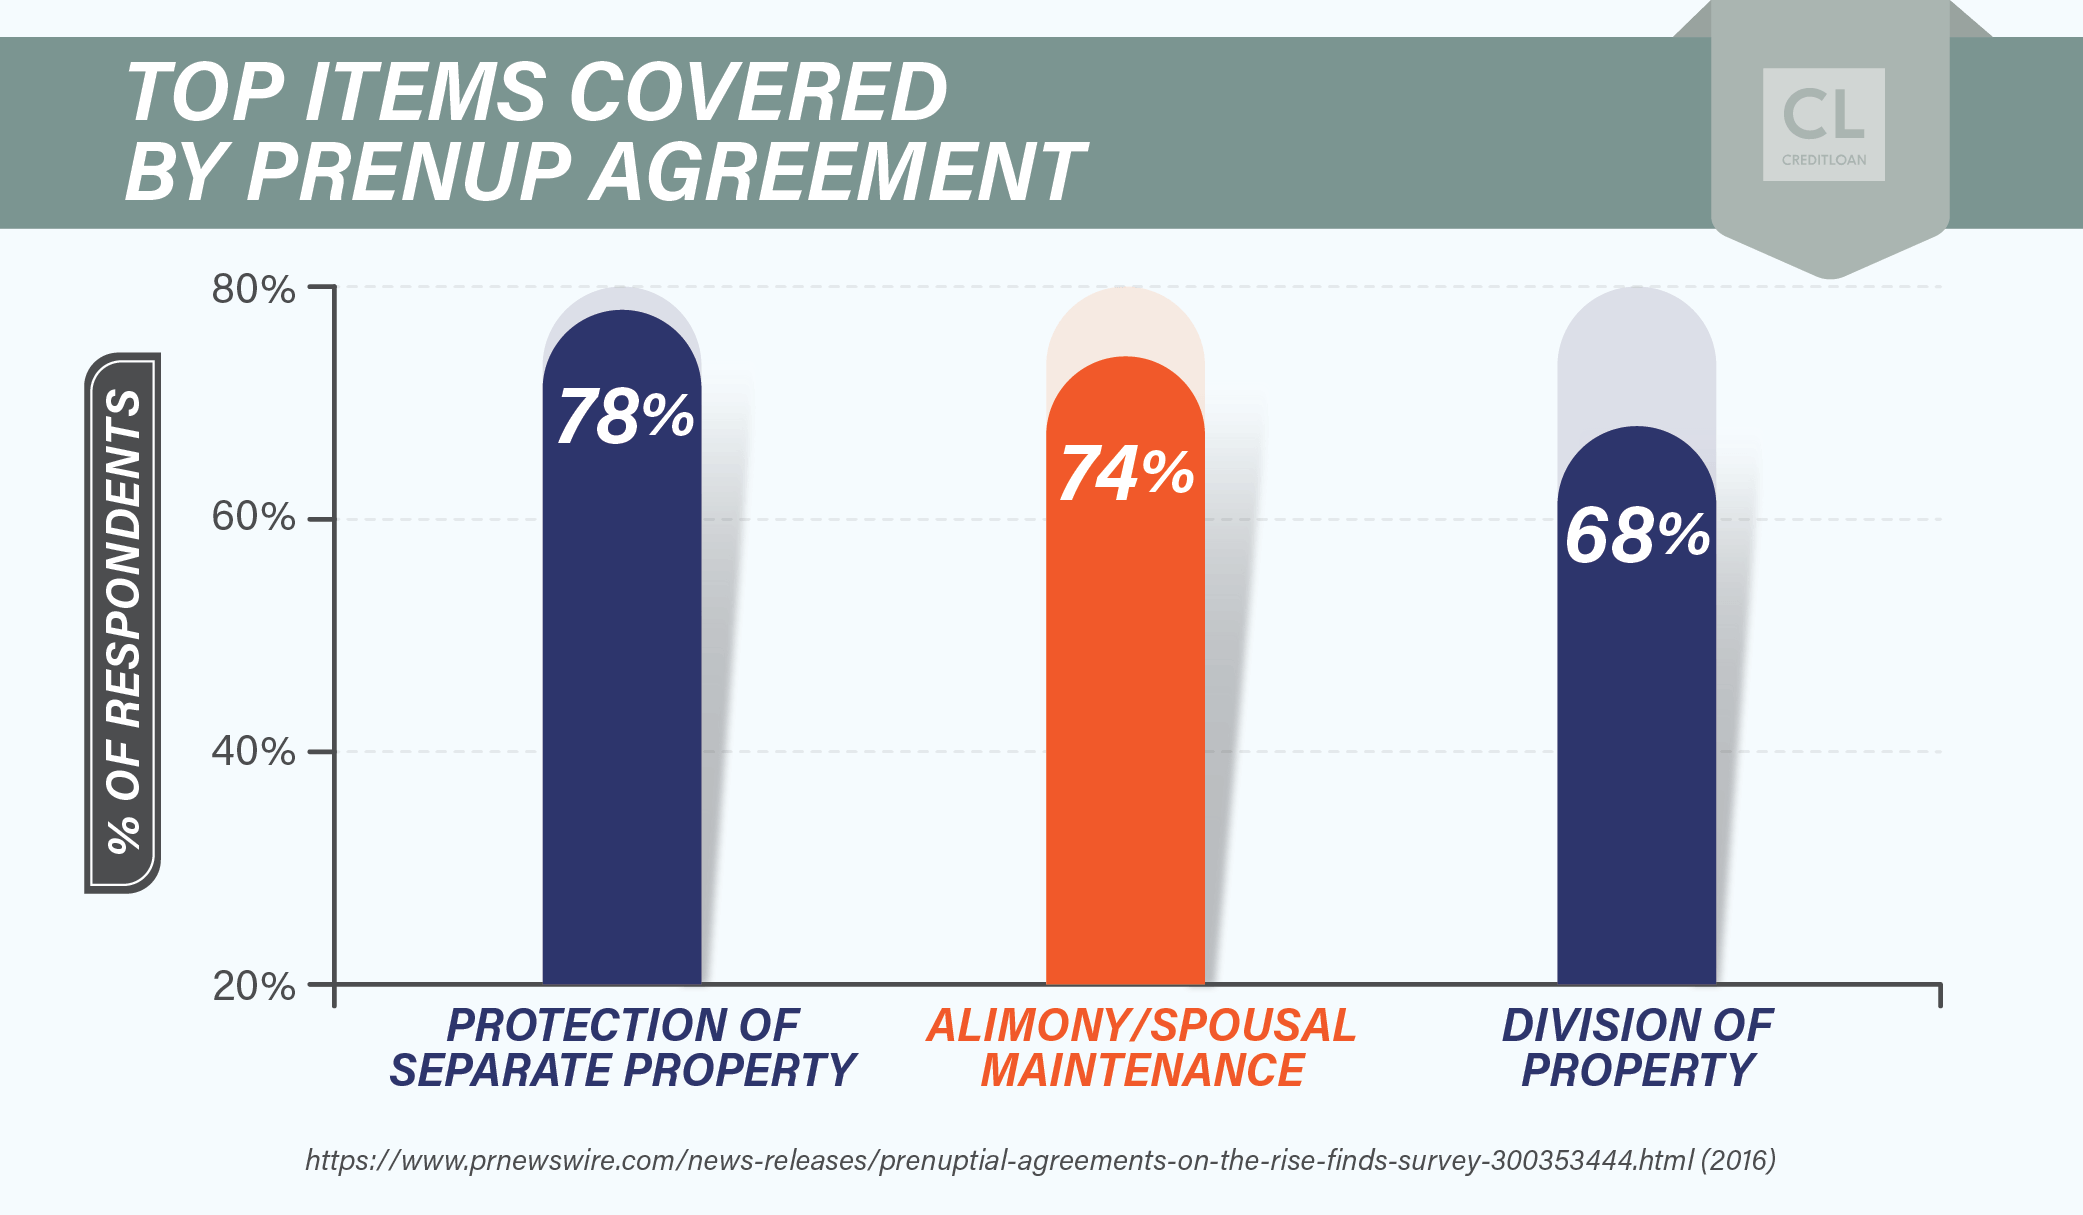 Top Items Covered By Prenup Agreement